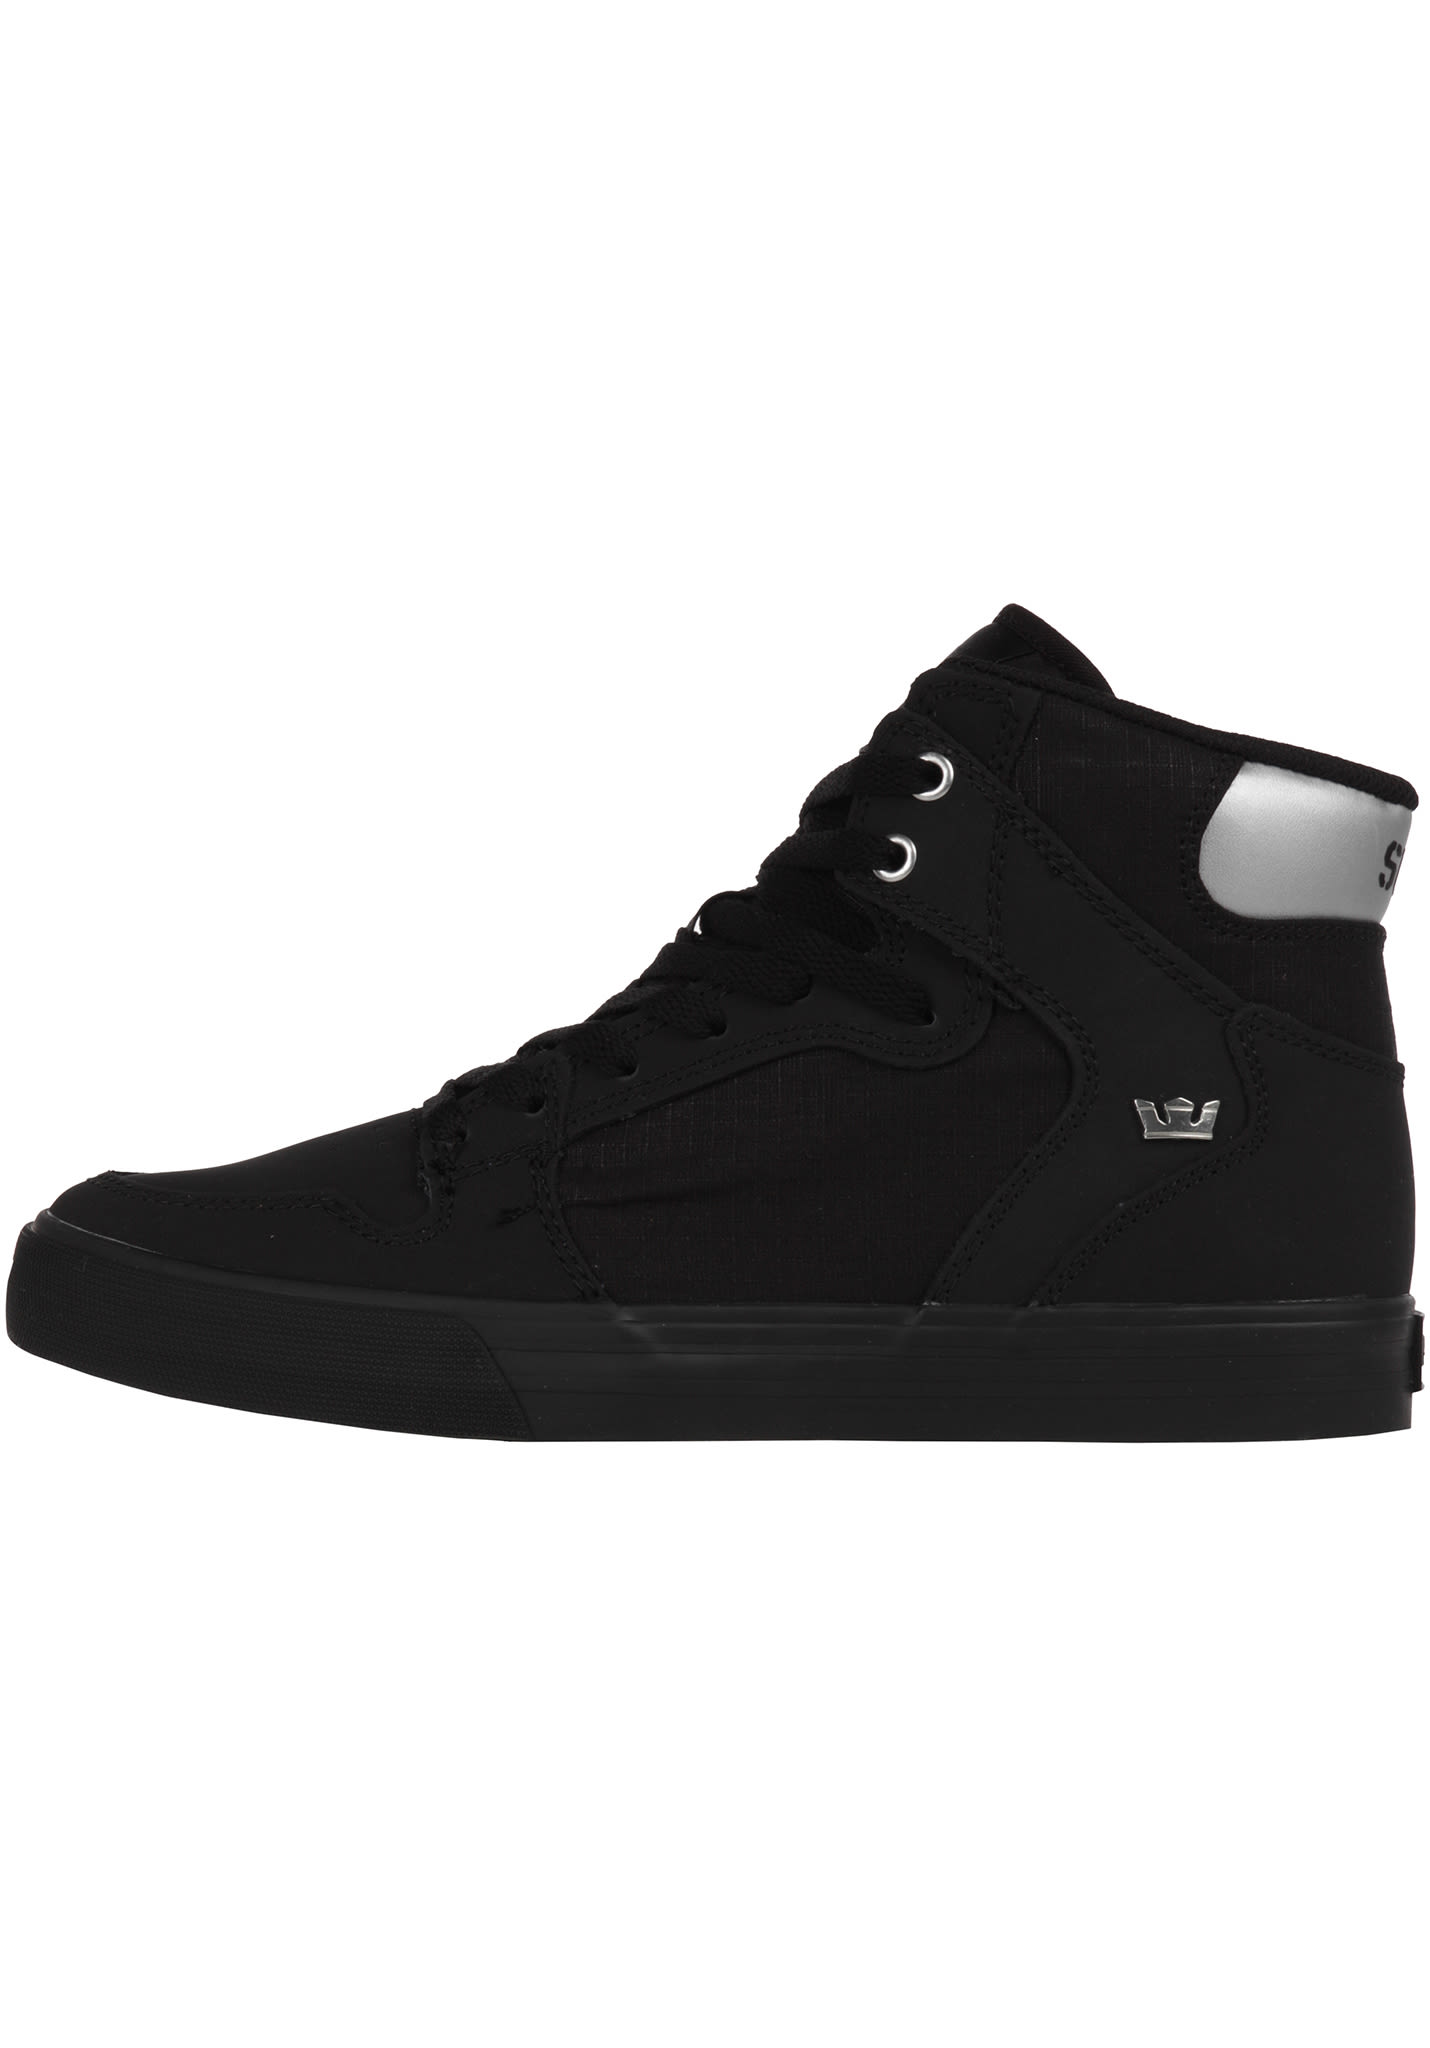 0b0c137fd1 SUPRA Vaider - Sneakers for Men - Black - Planet Sports